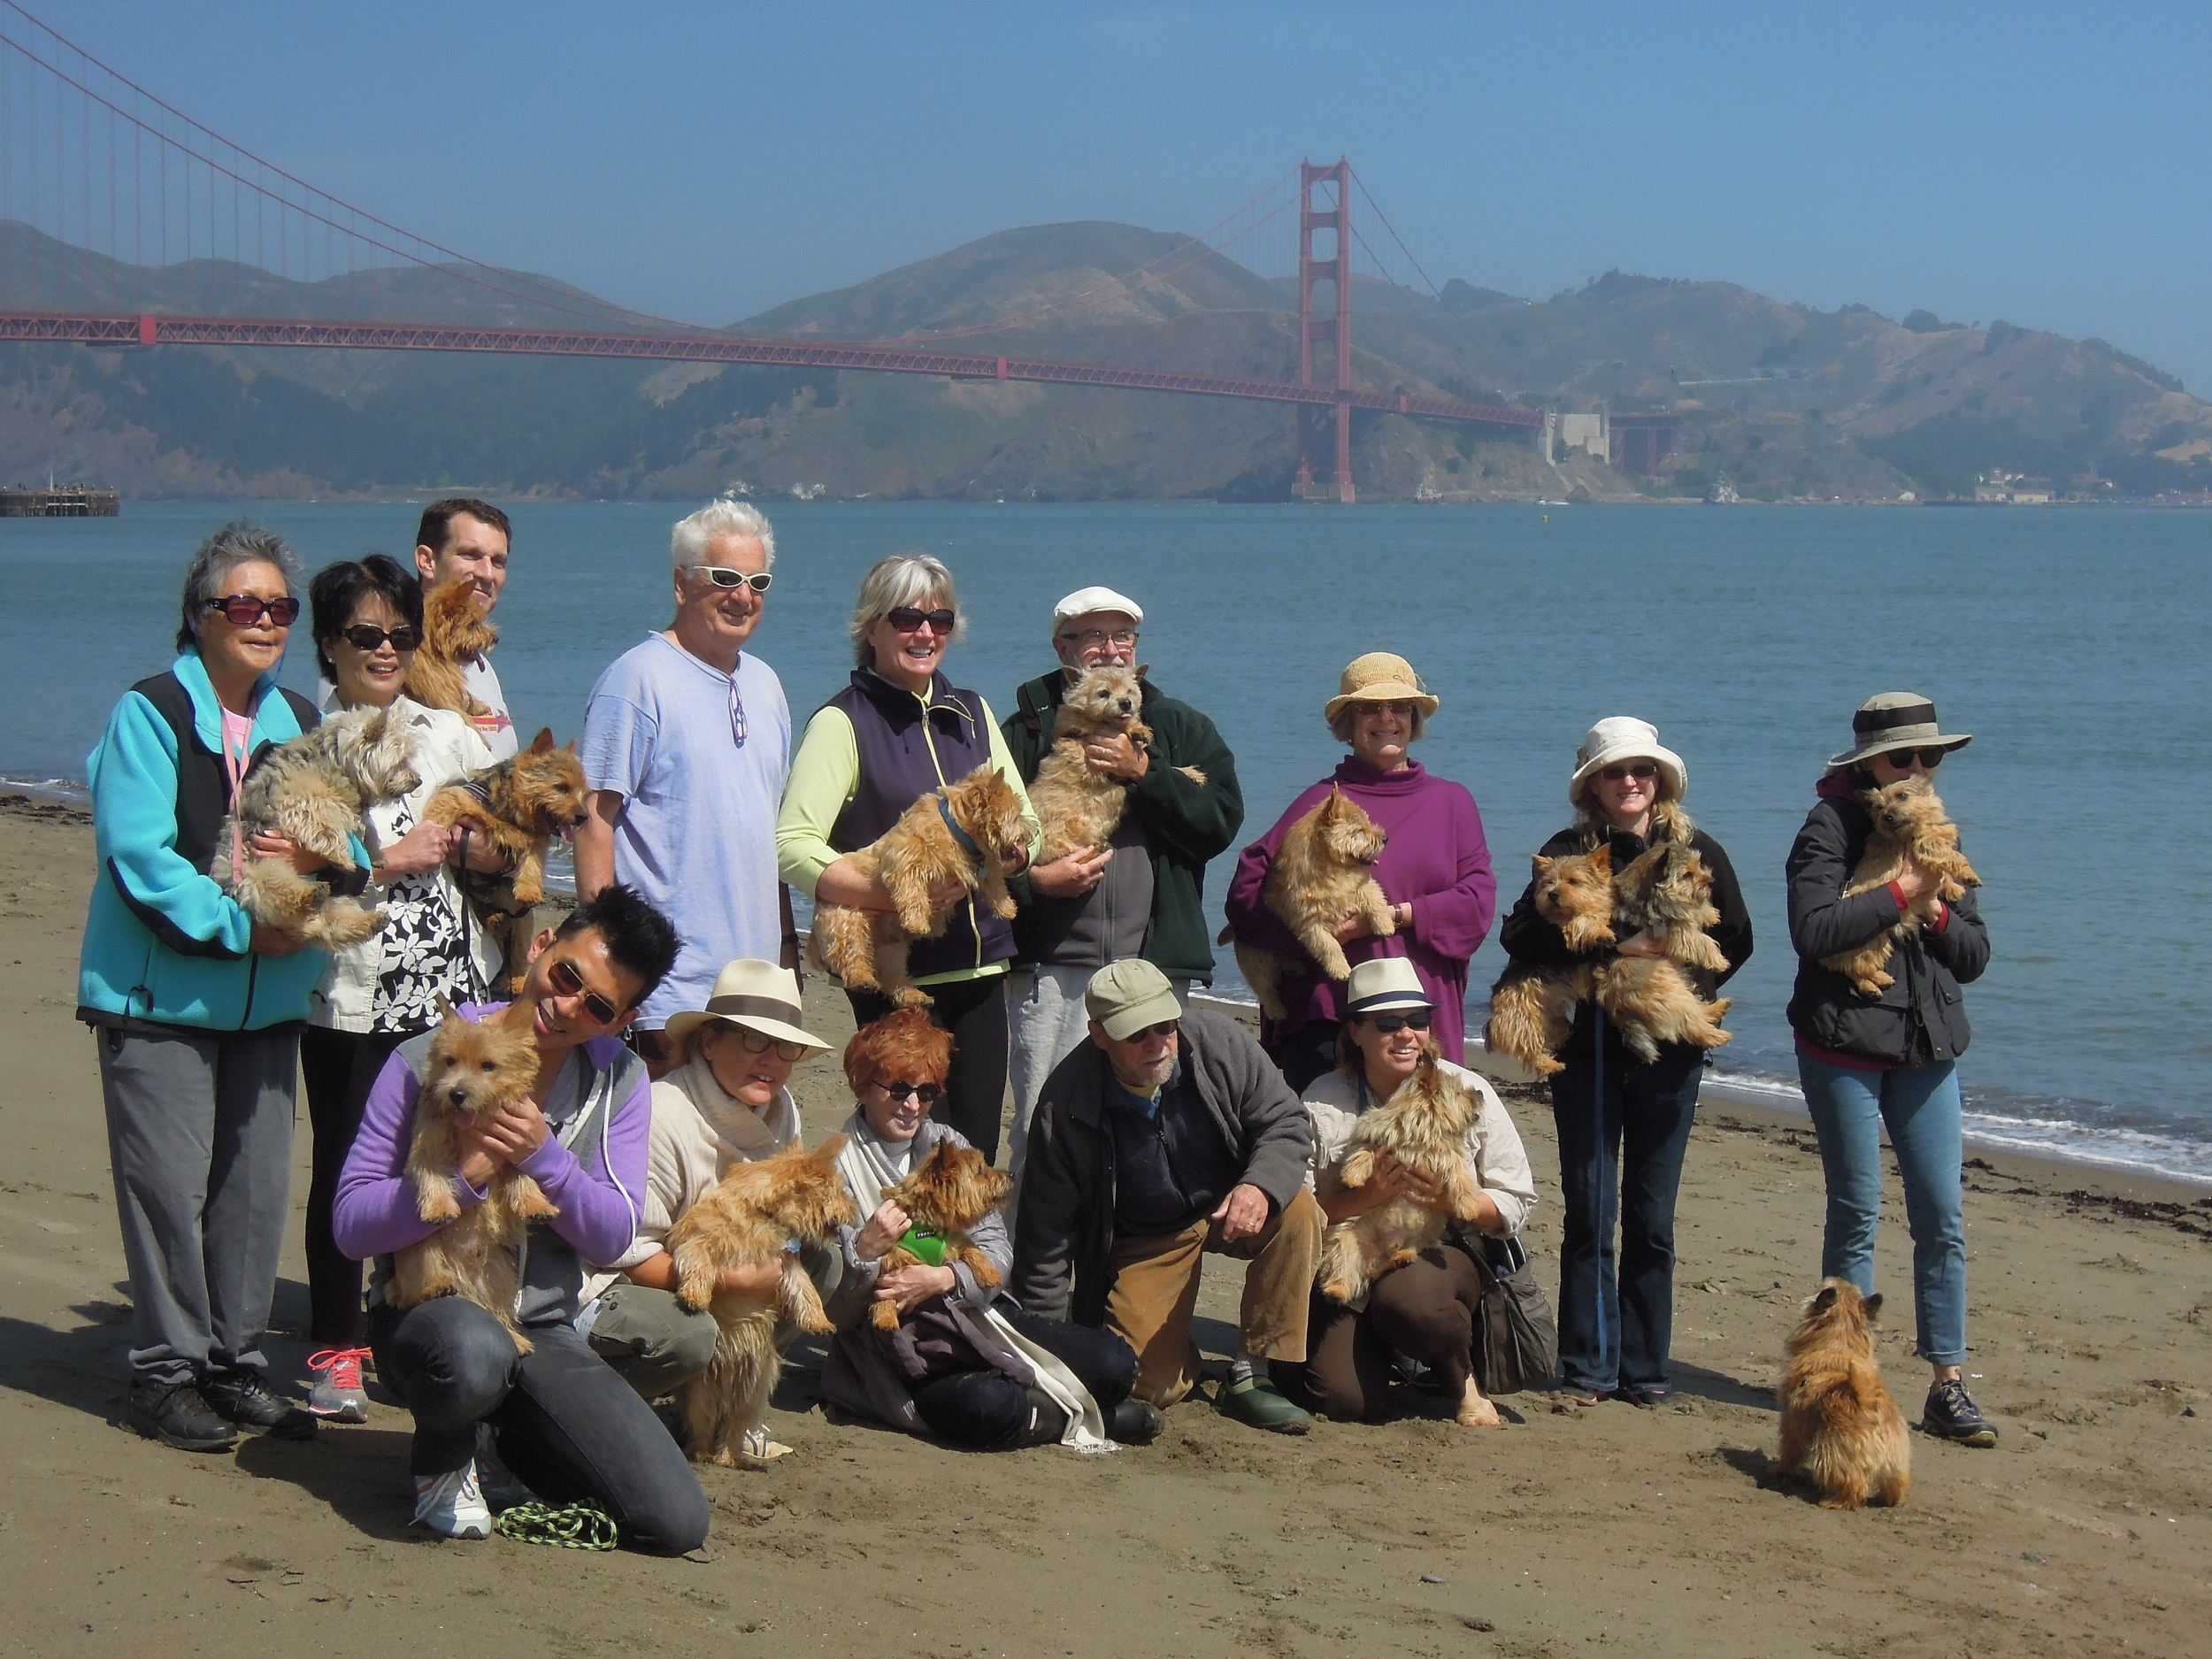 Group Photo at Crissy Field 2014.jpg